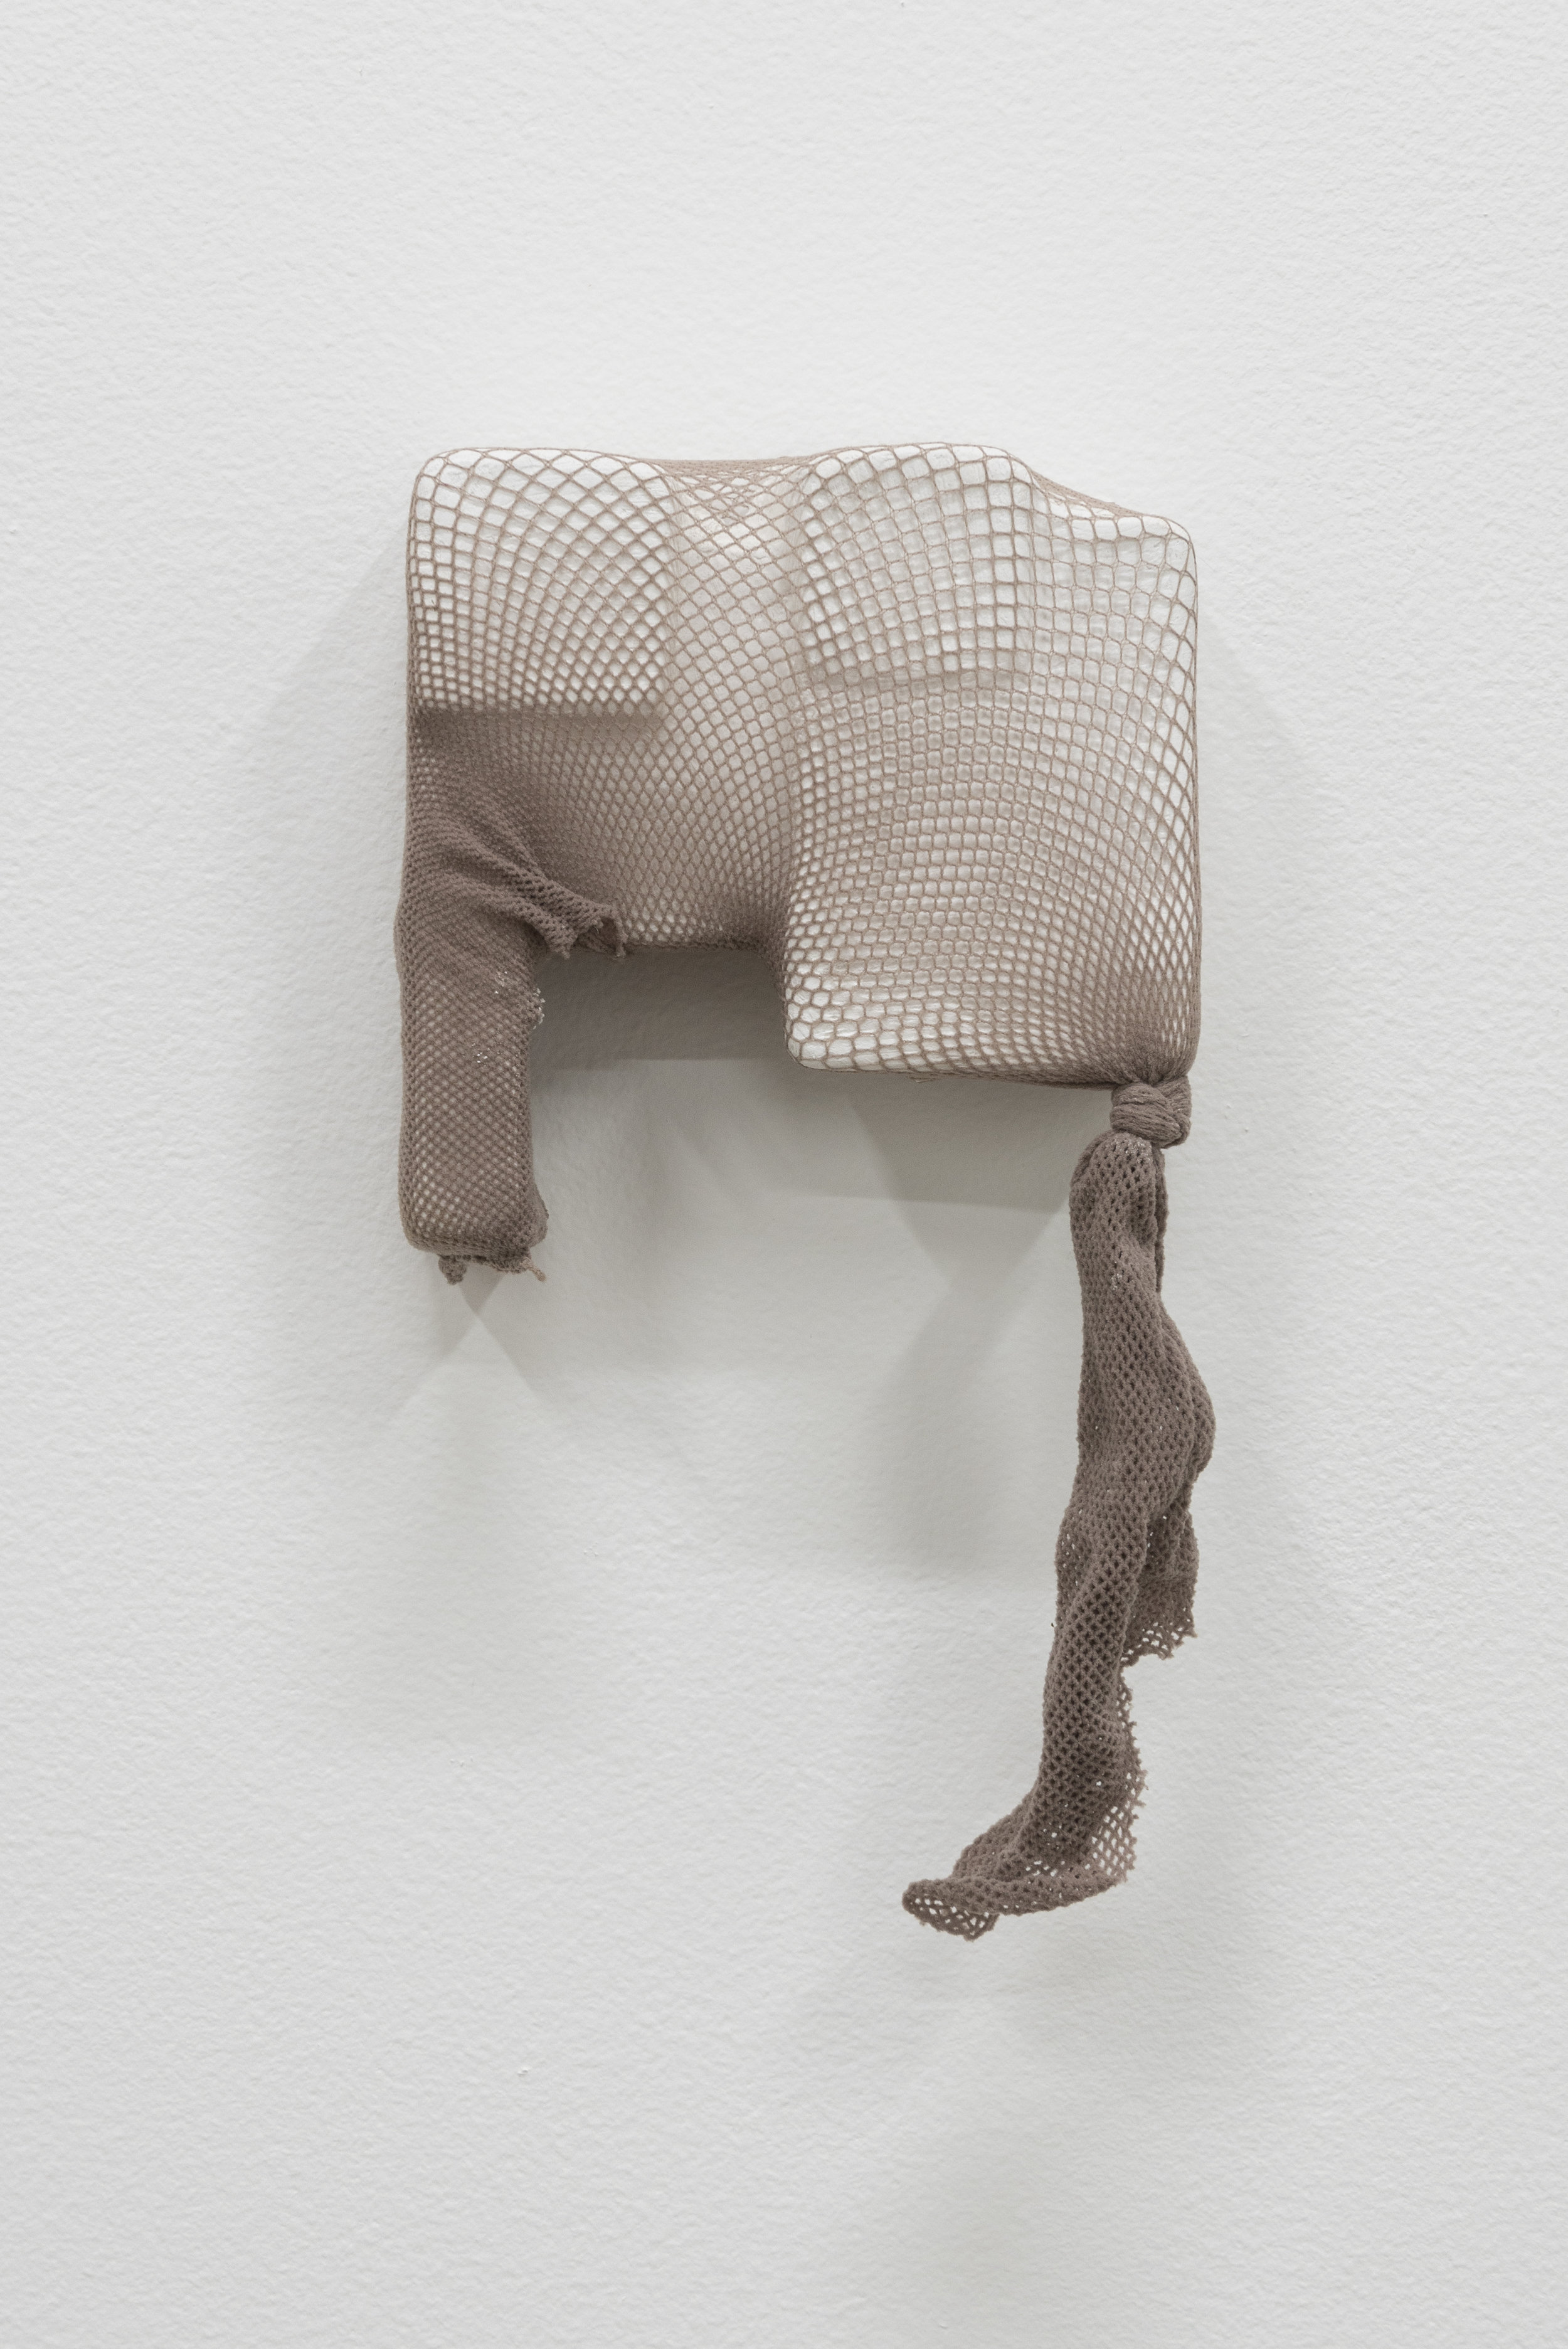 Sara Hubbs,  Closer, 2 018, plaster cloth, plaster and fishnet tights